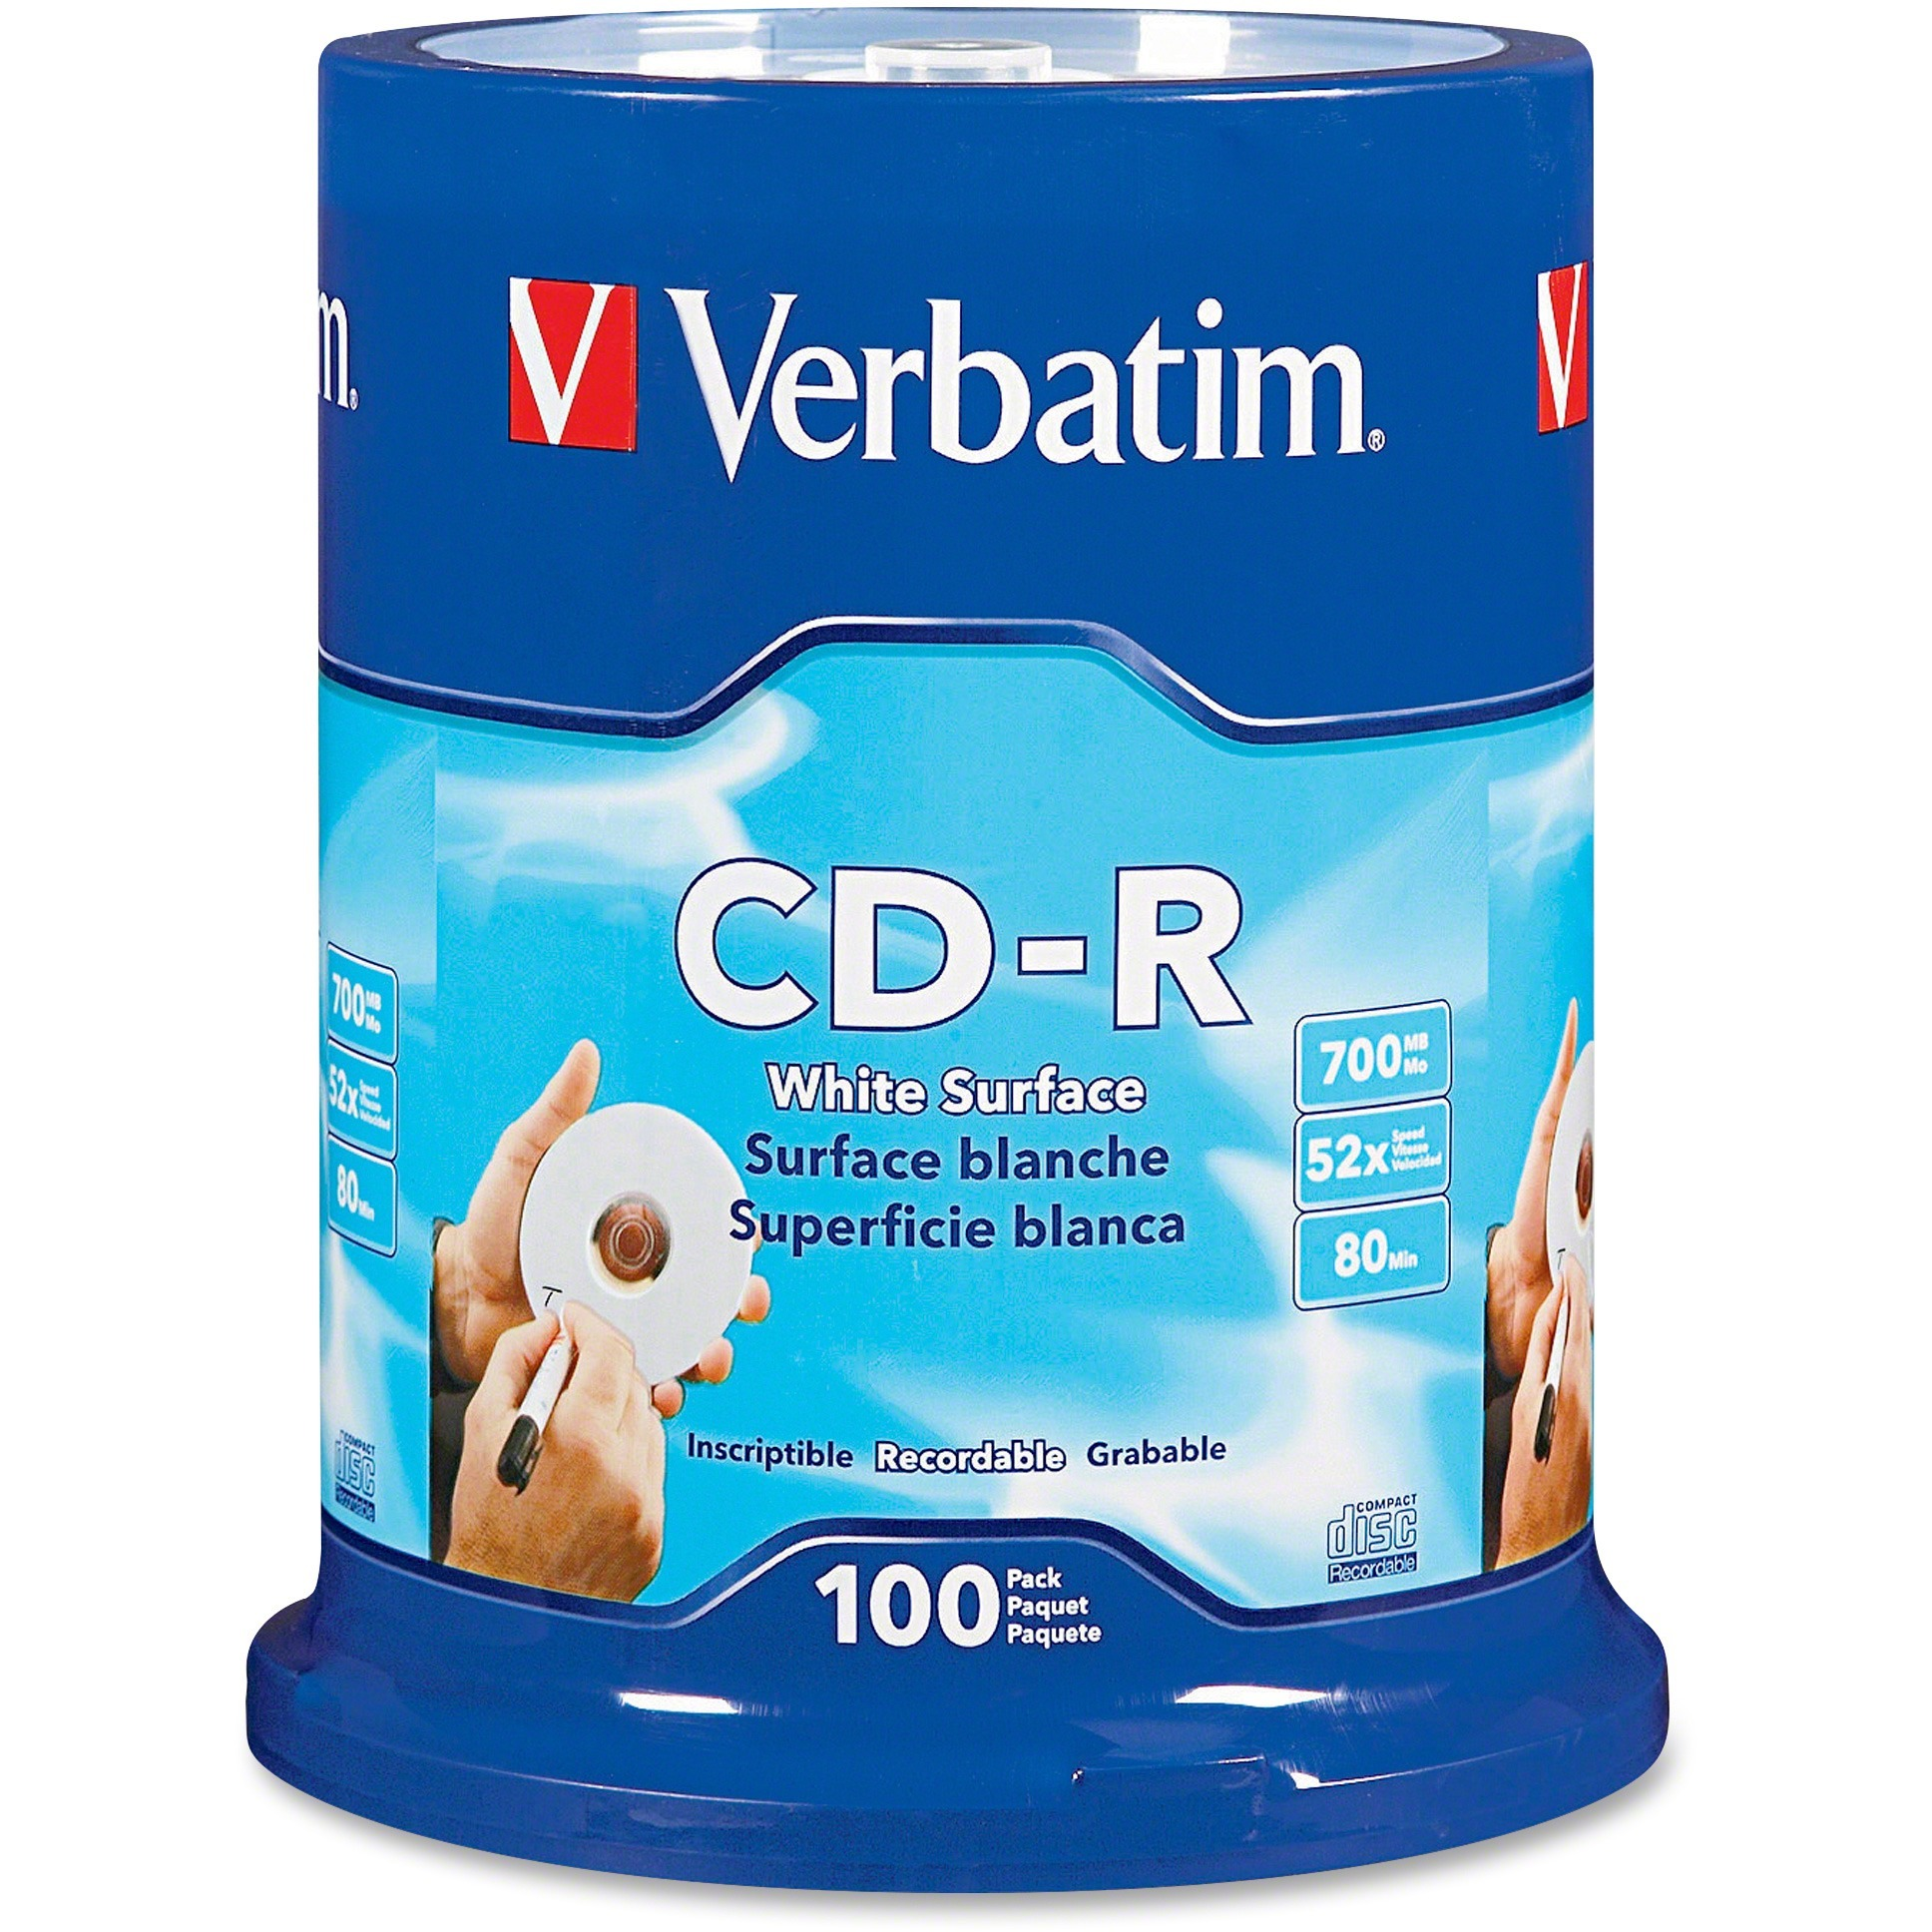 Verbatim, VER94712, Blank White CD-R Printable Disks, 100